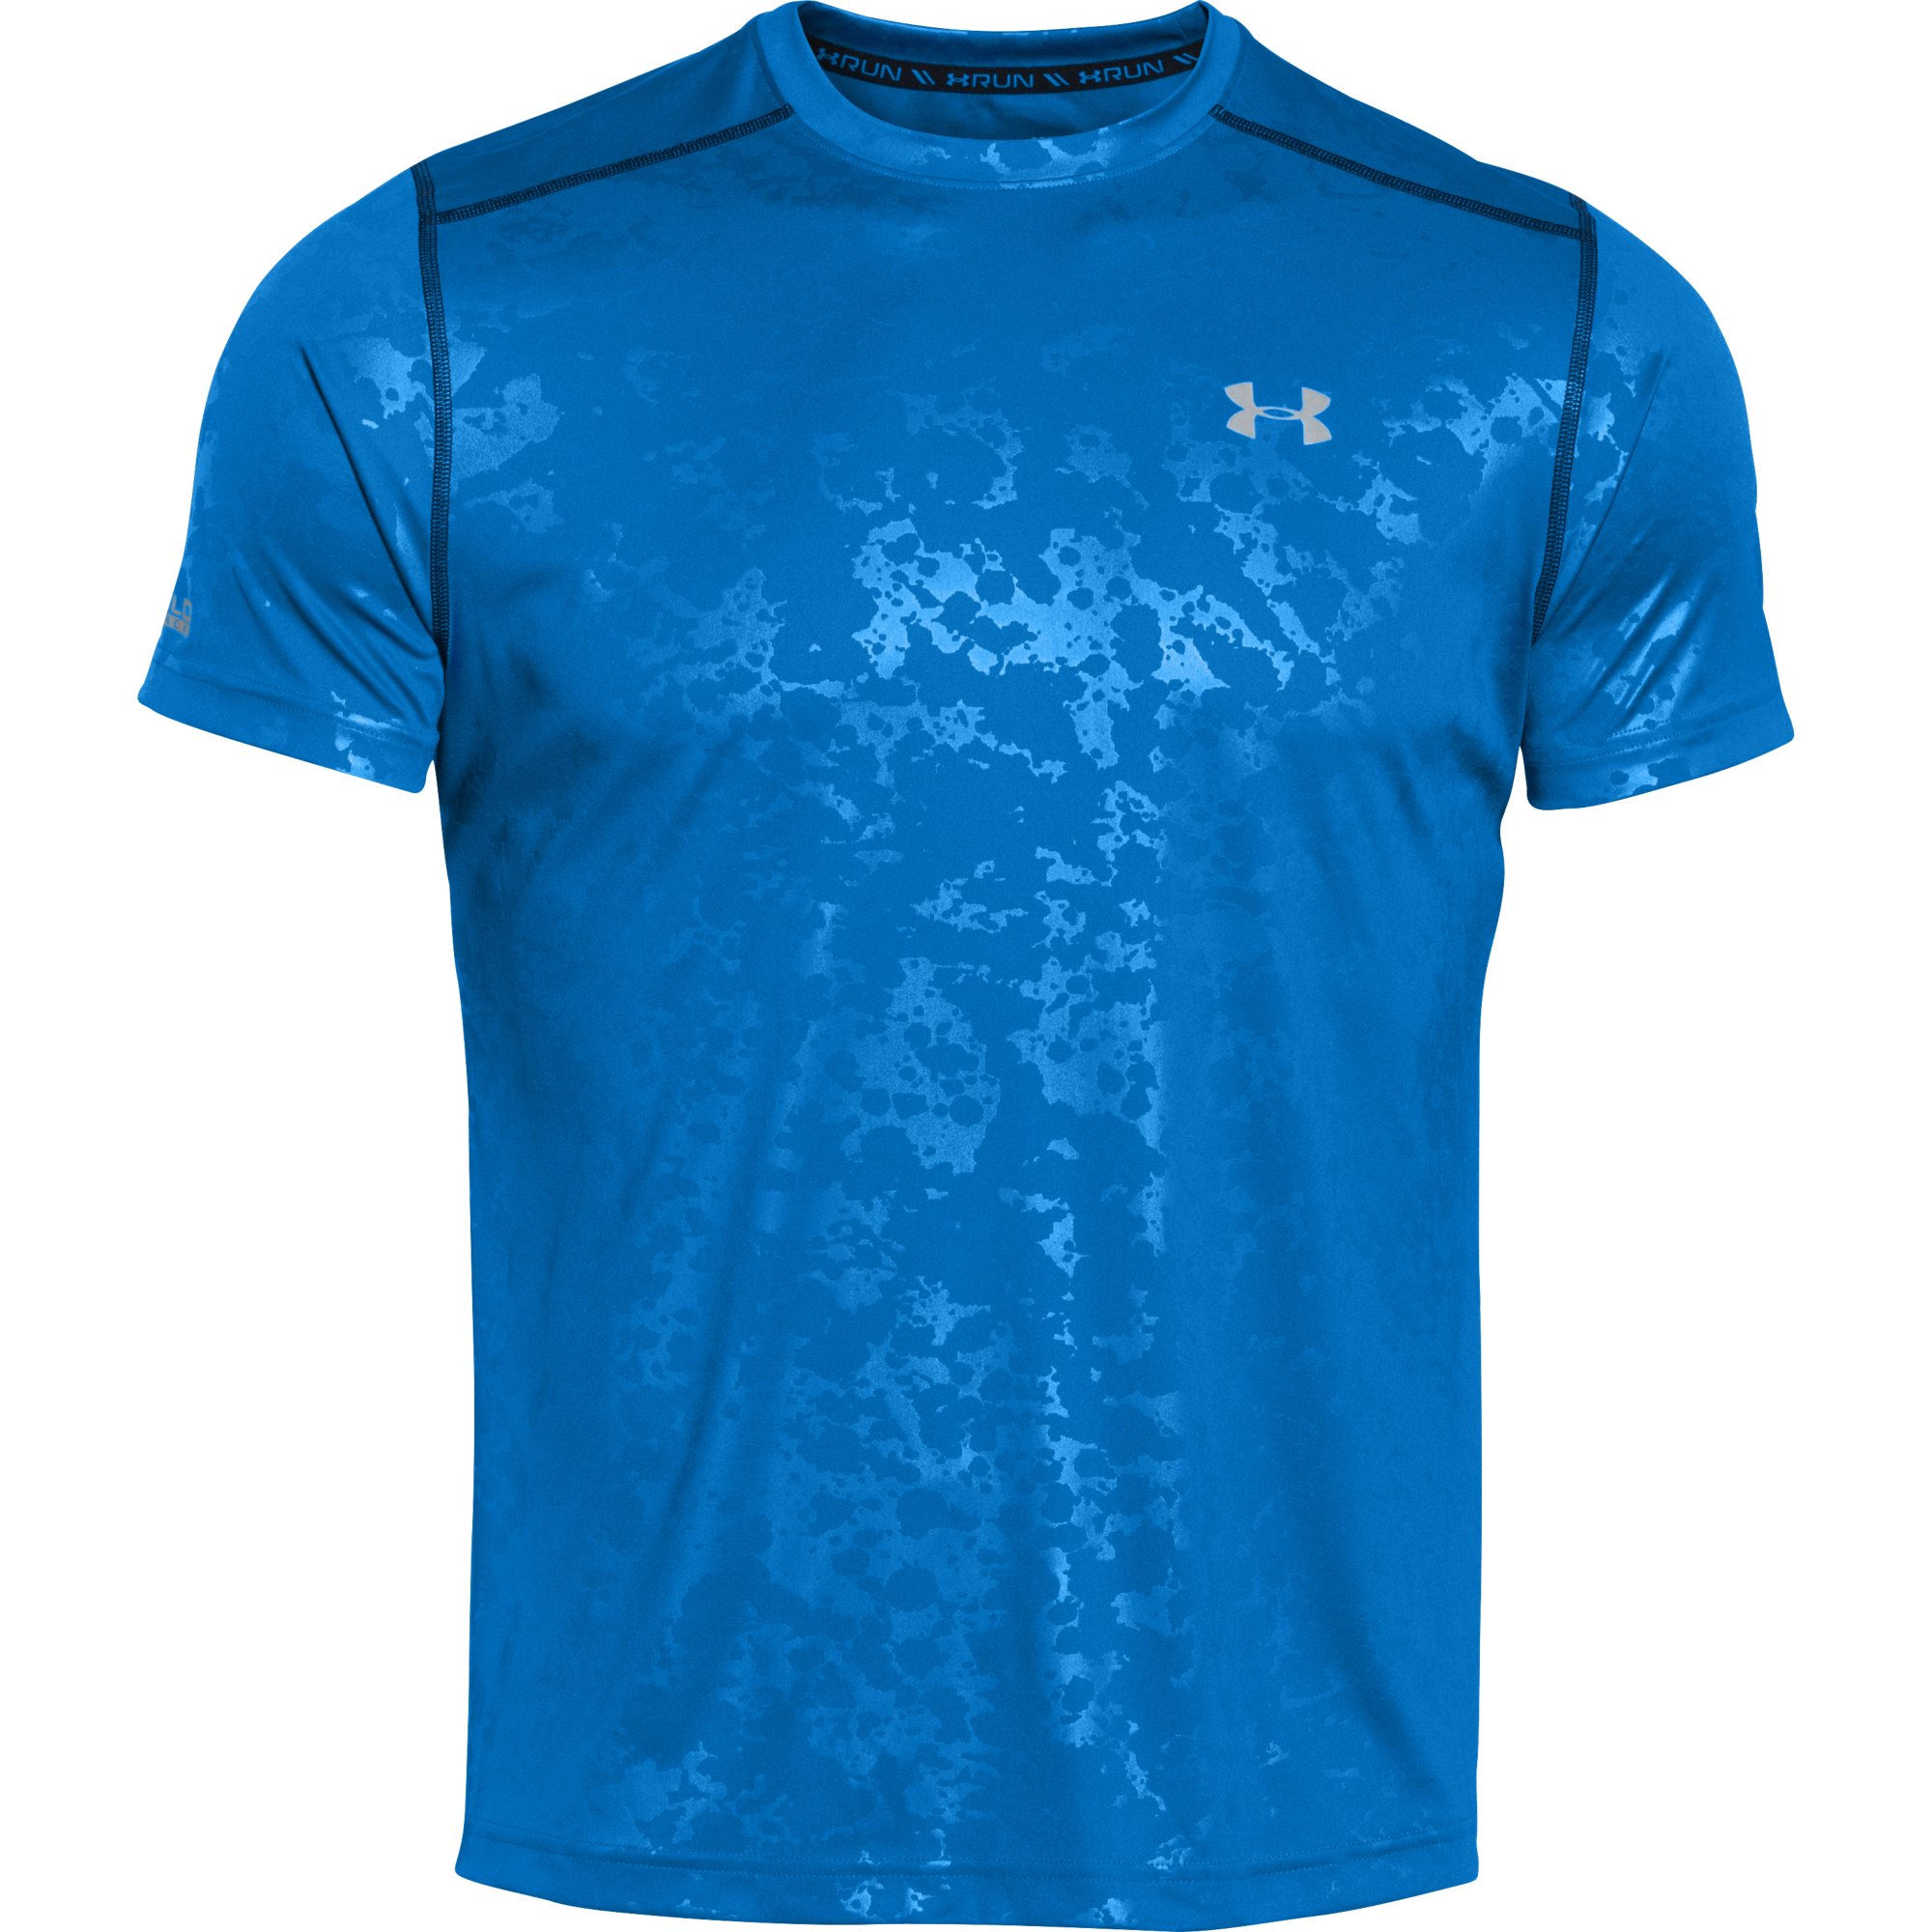 Apparel Review The Under Armour Coldblack S S